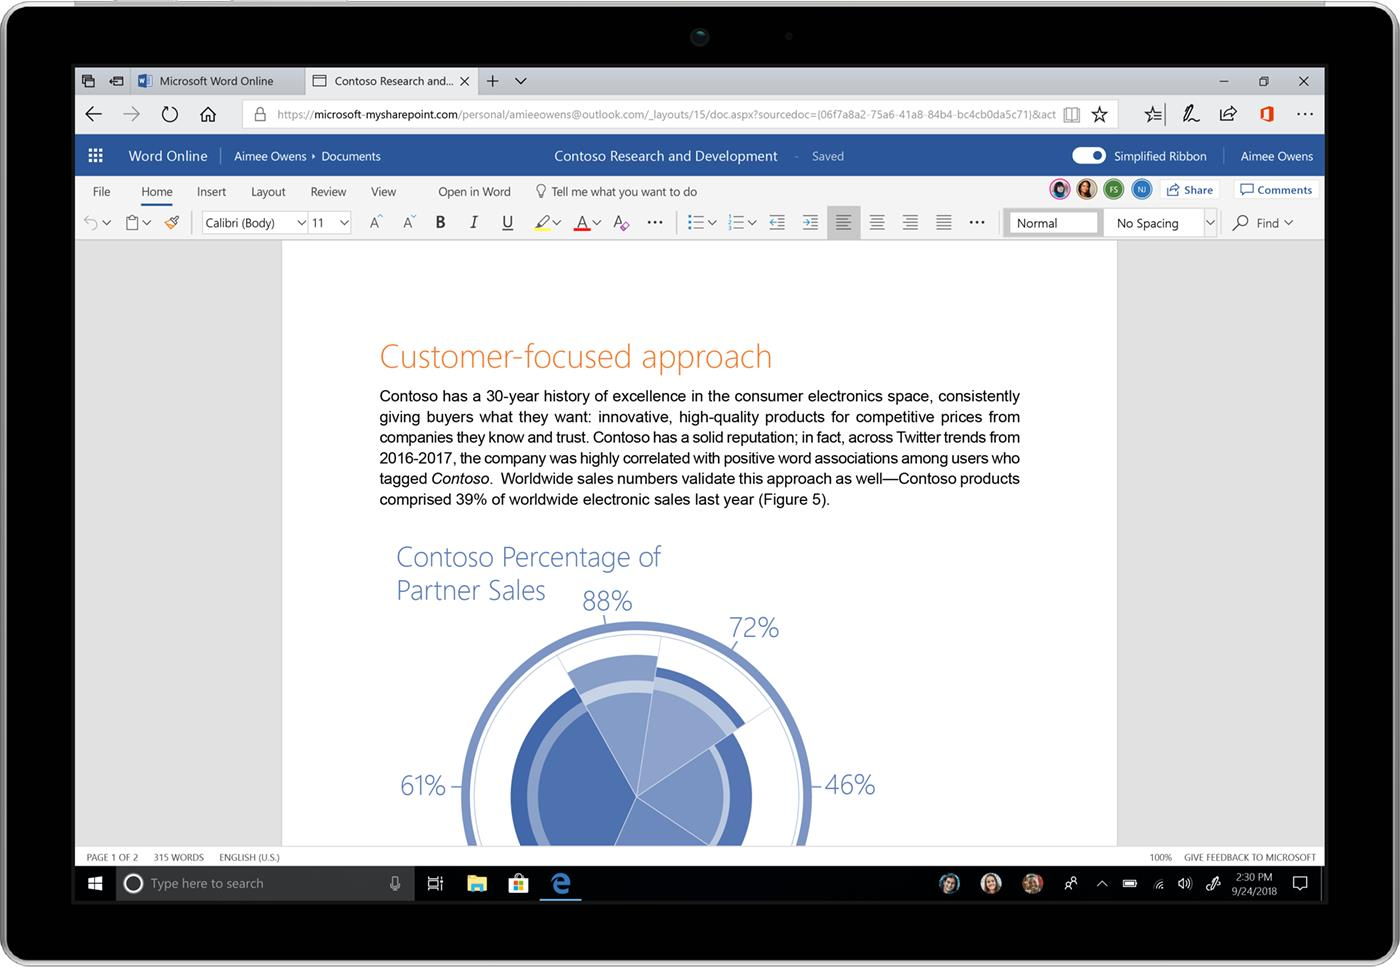 Power and simplicity—updates to the Office 365 user experience